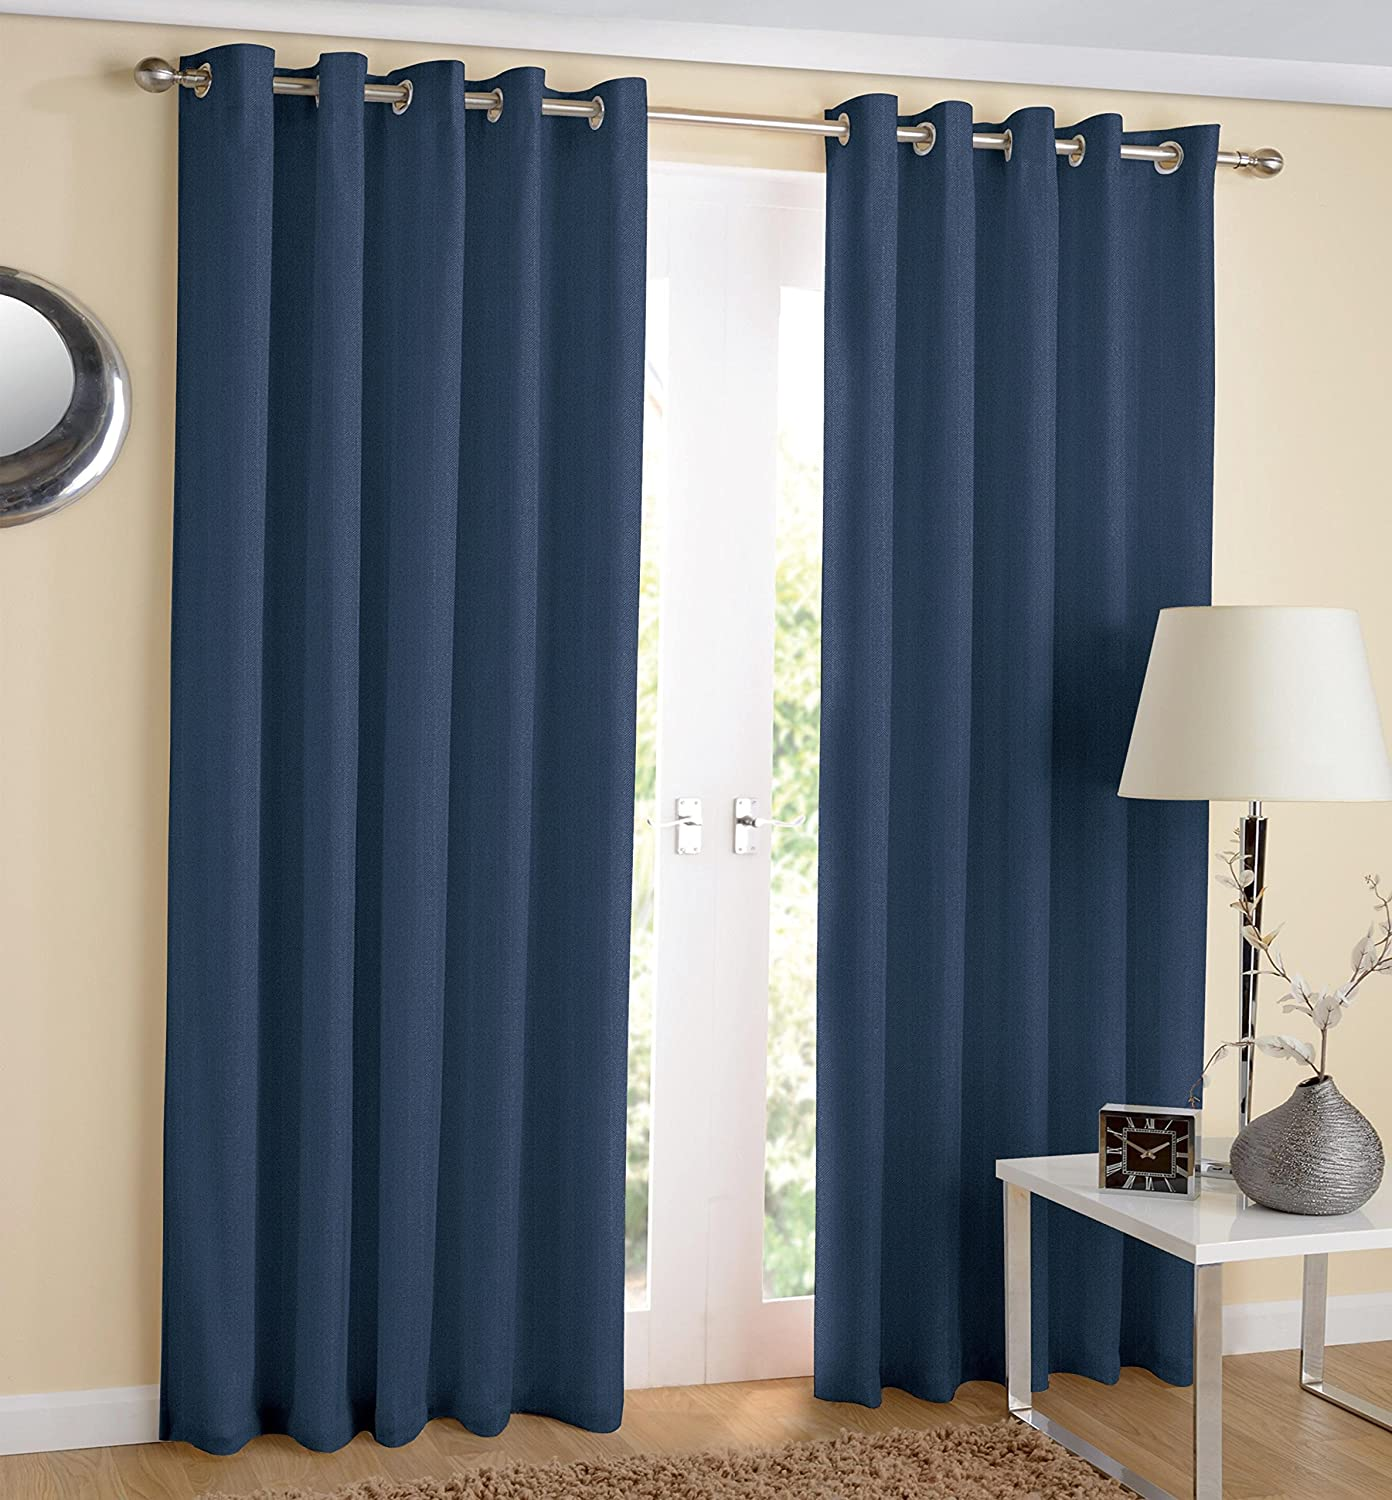 """Hachette Thermal Blackout Curtains Eyelet Ring Top Including Pair of Tiebacks (Navy Blue, 46"""" x 54"""") Navy Blue 46"""" x 54"""""""